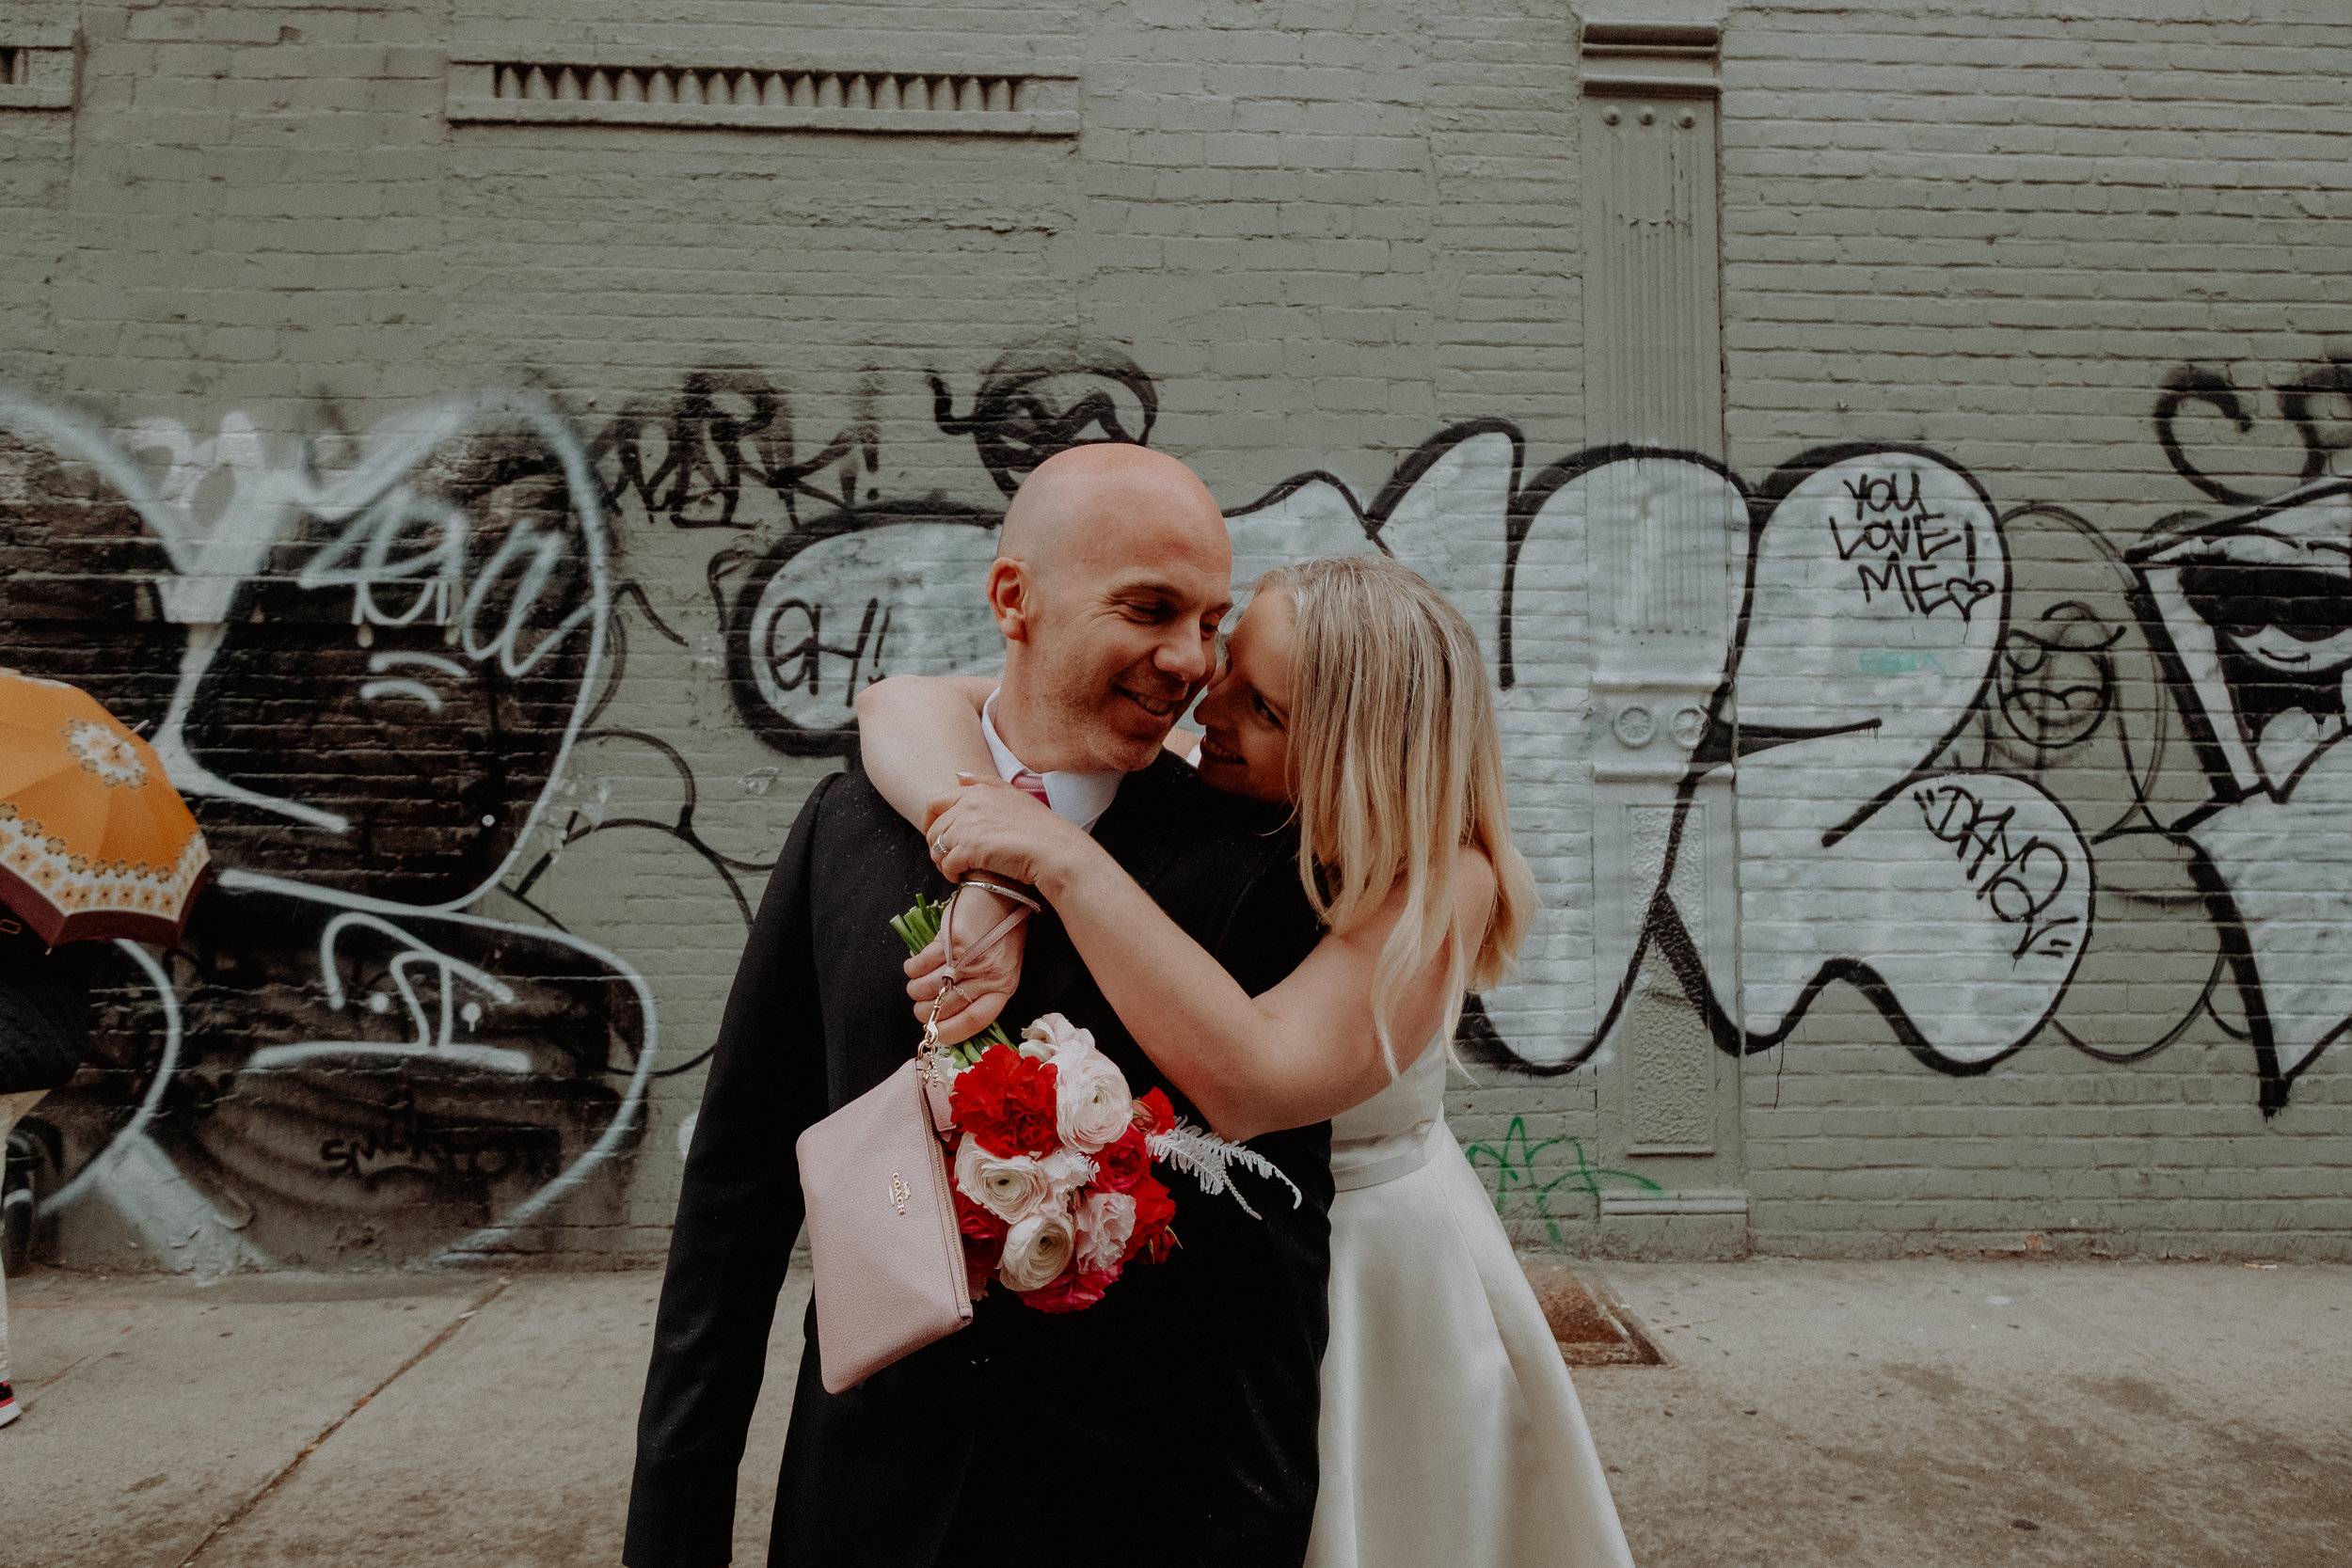 Brooklyn_City_Hall_Elopement_Photographer_Chellise_Michael_Photography268.JPG